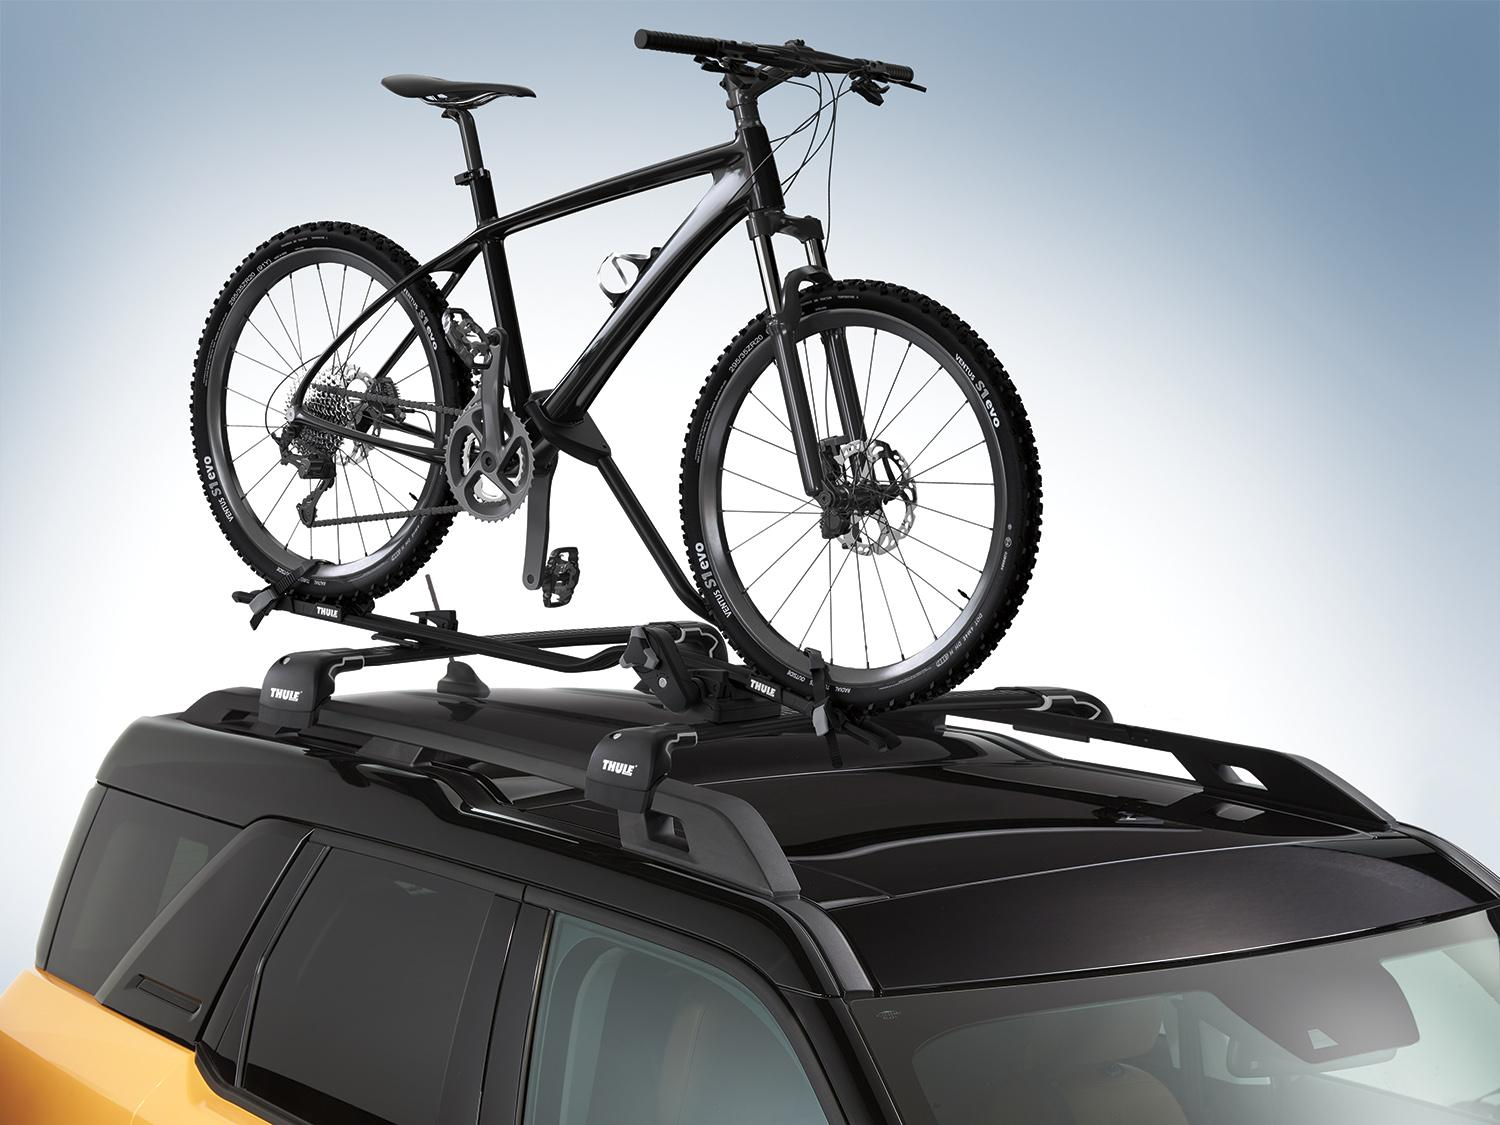 Bike Carrier, Upright, Roof Mounted